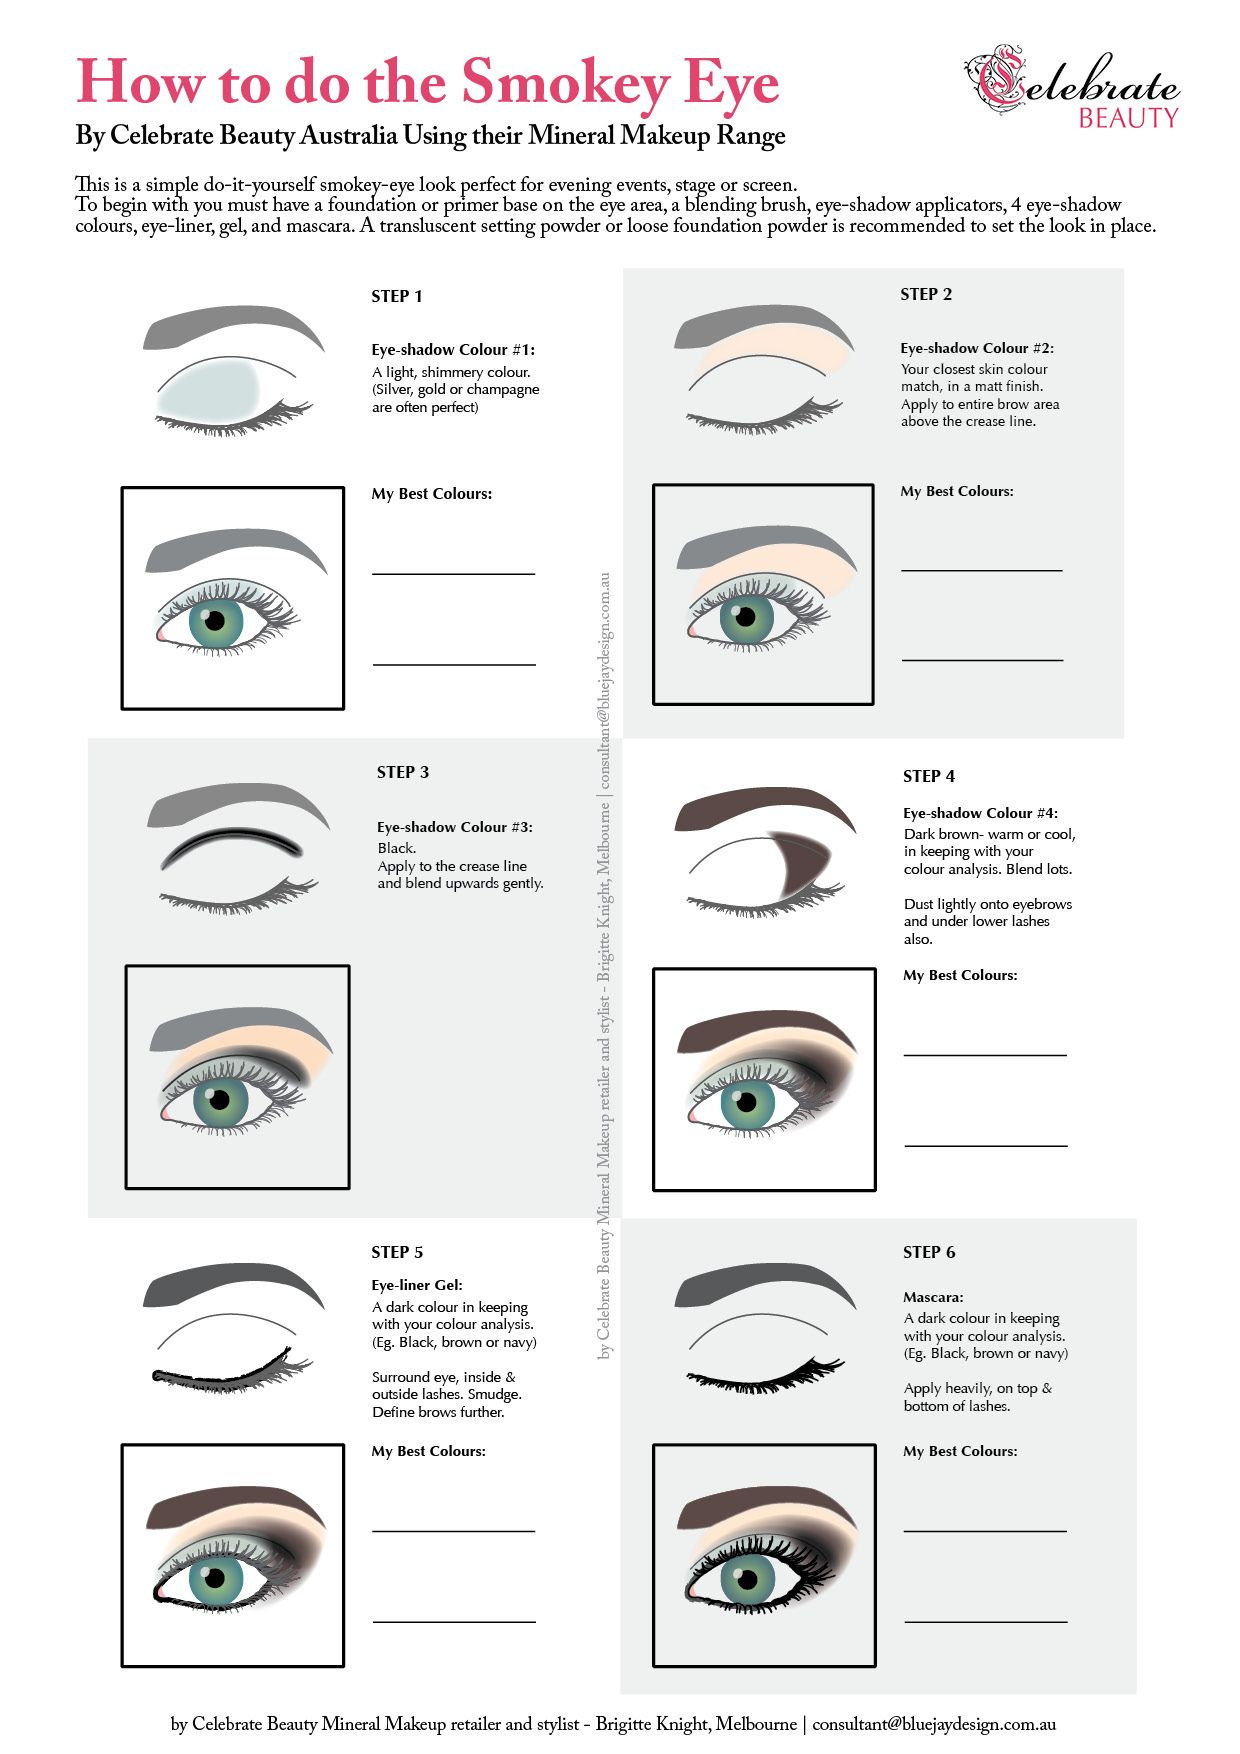 small resolution of how to do the smokey eye diagram for makeup application visit my board for the upcoming course in melbourne smokeyeye makeuptutorial makeupdemo